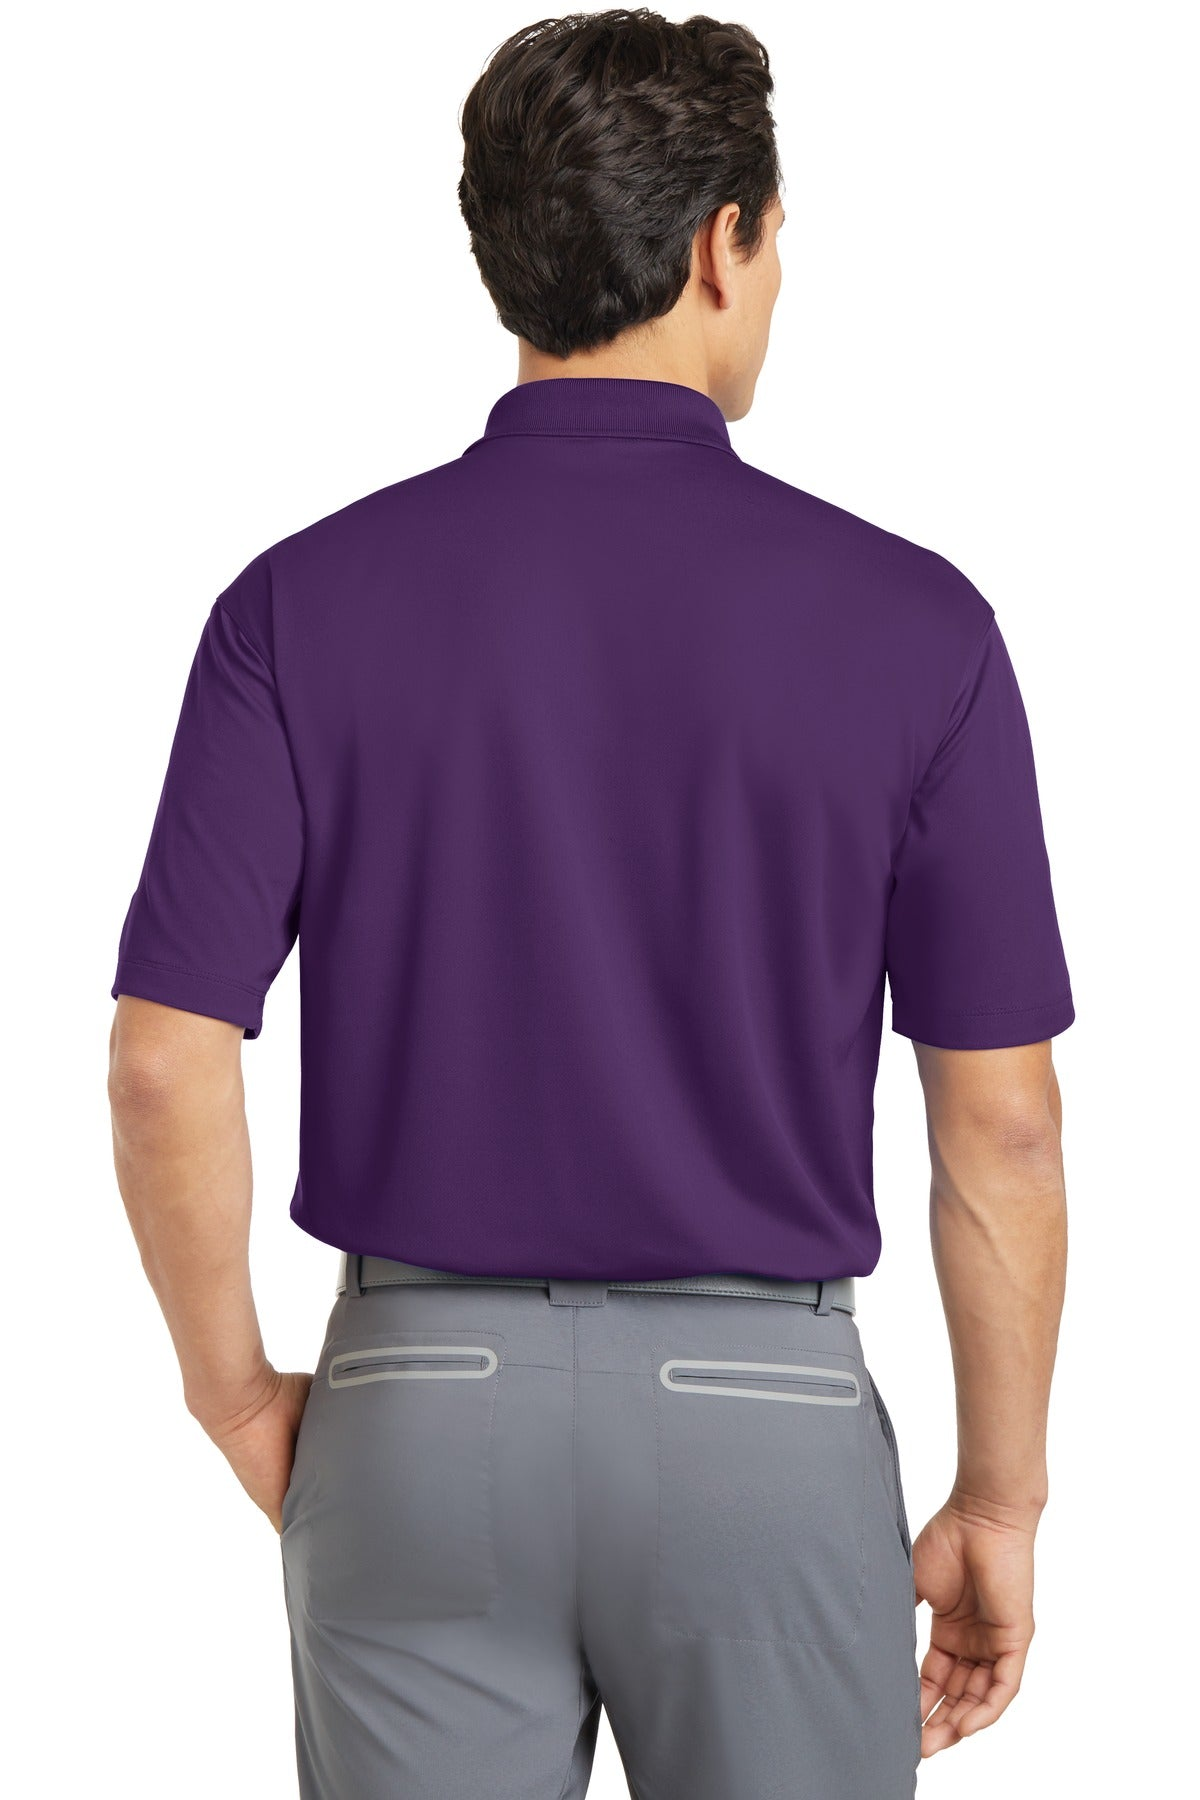 Night Purple Nike Tall Dri-FIT Micro Pique Polo.